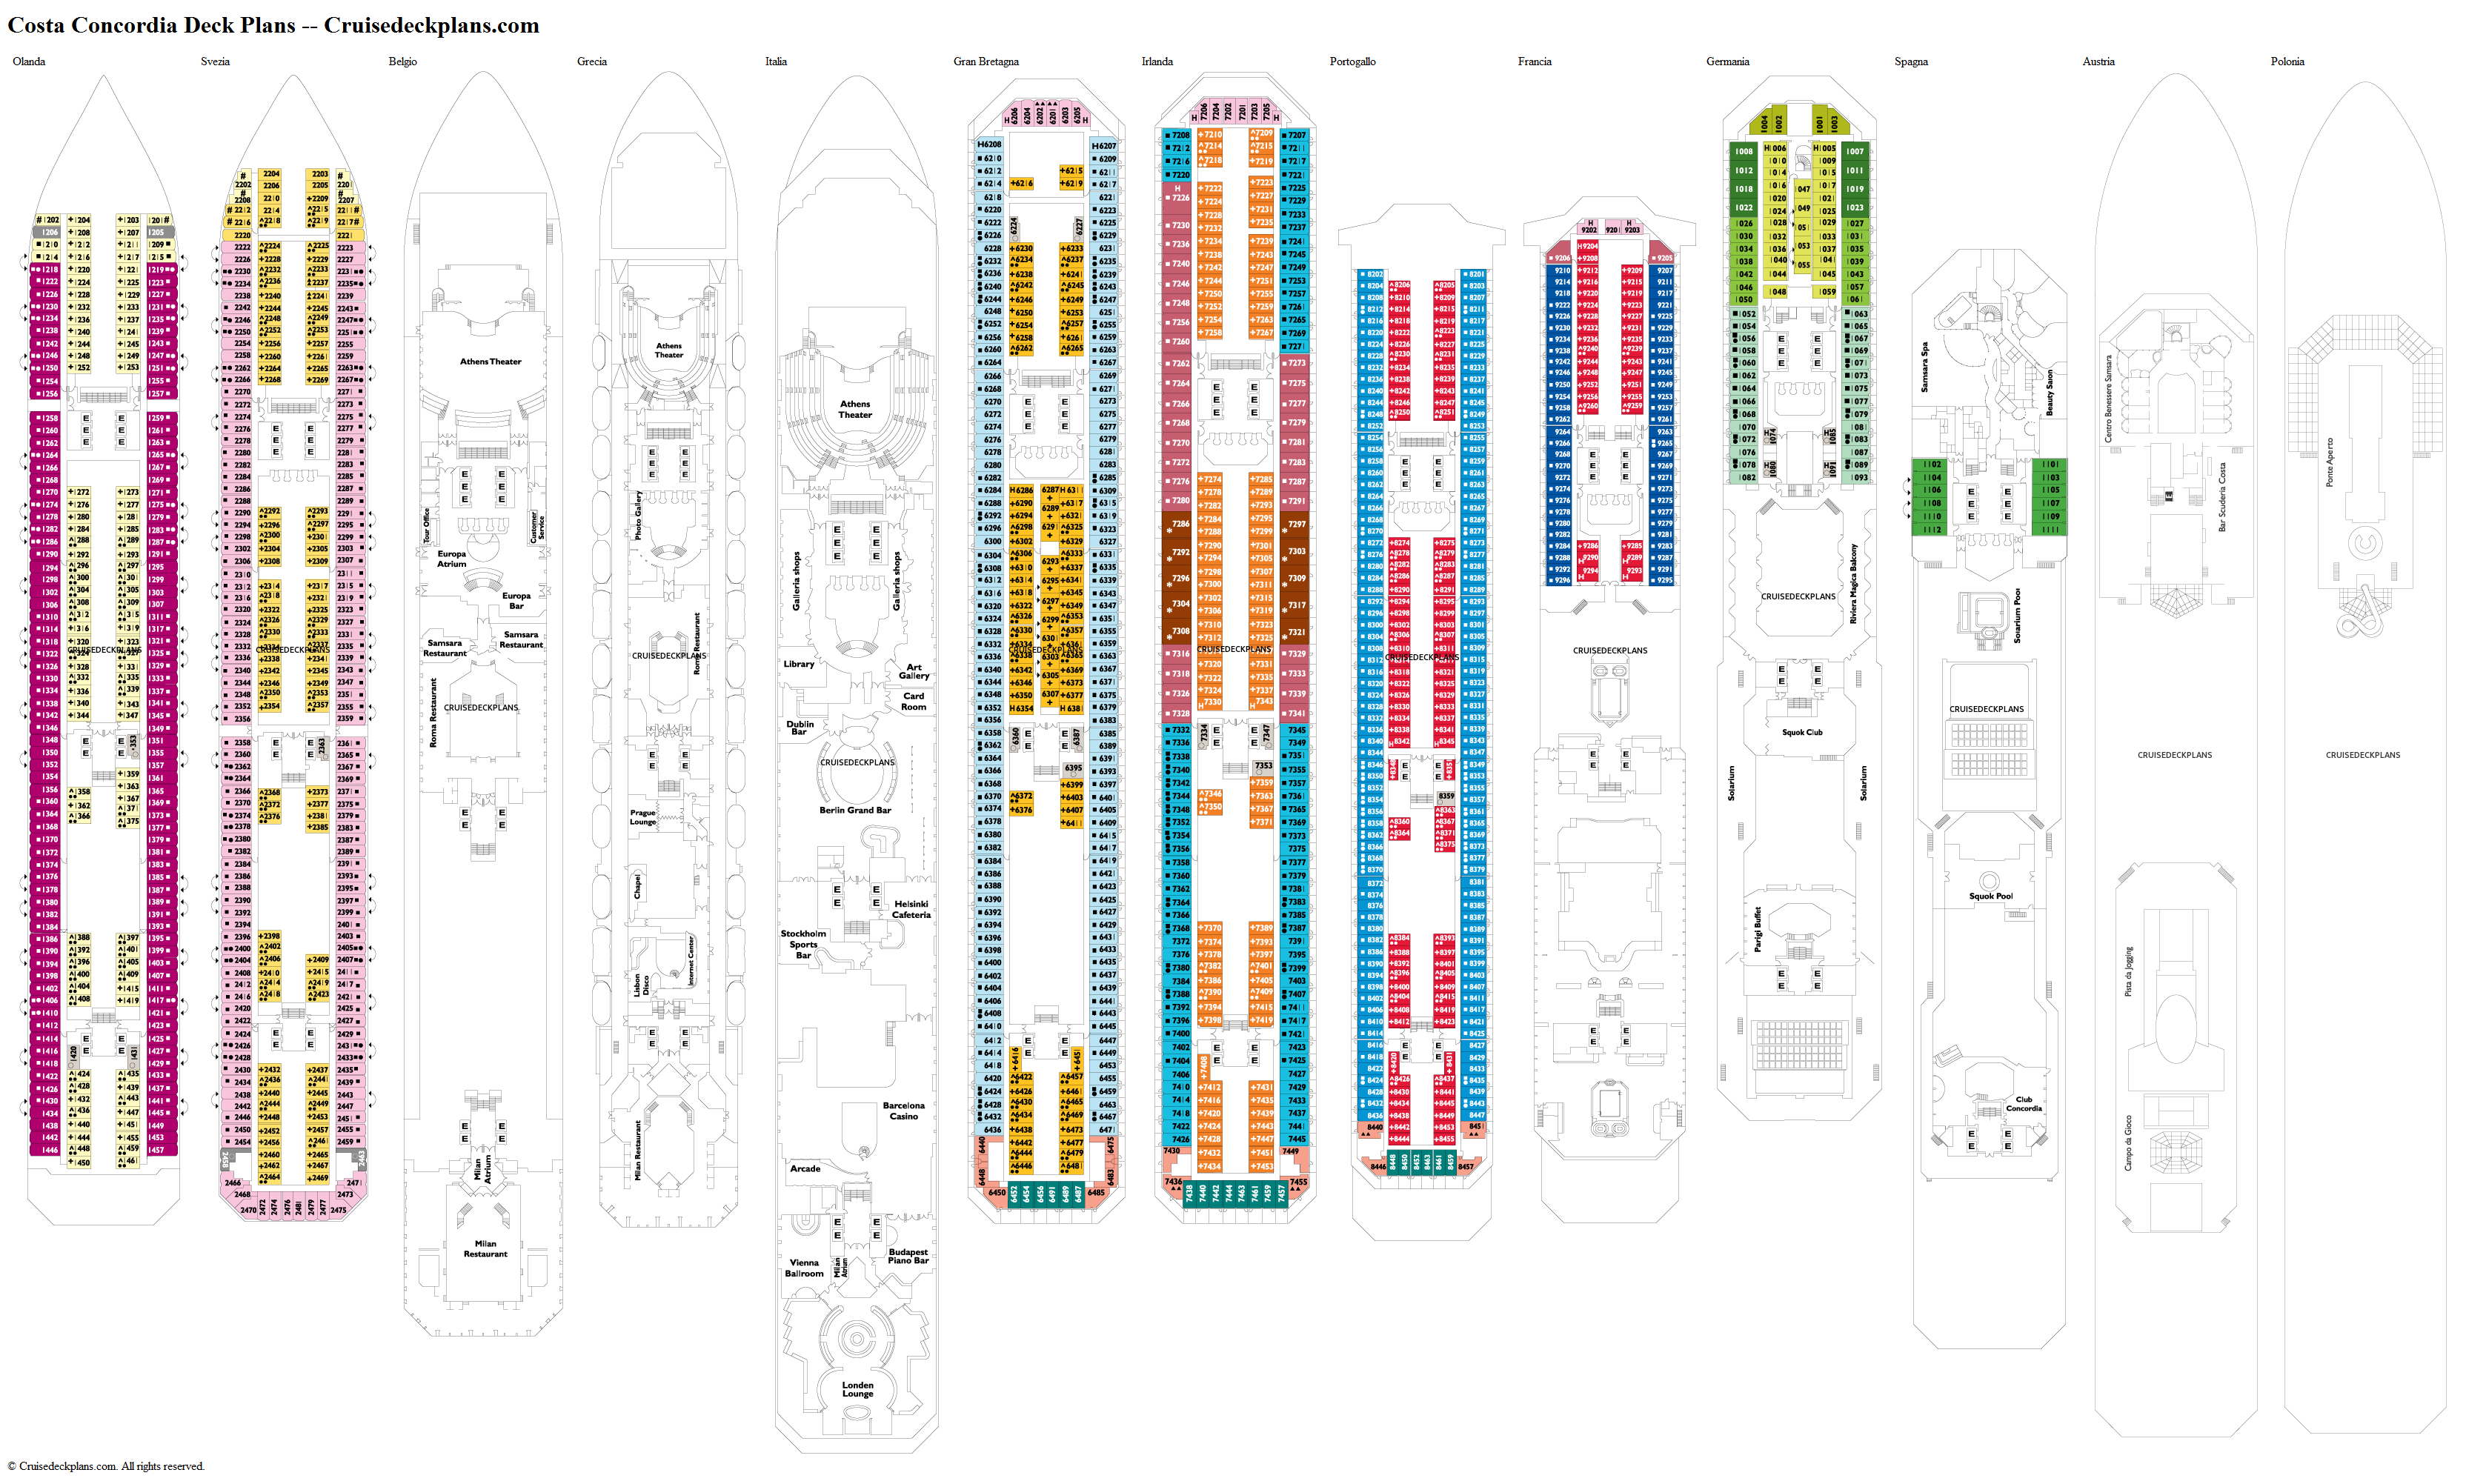 Costa Concordia Italia Deck Plan Tour